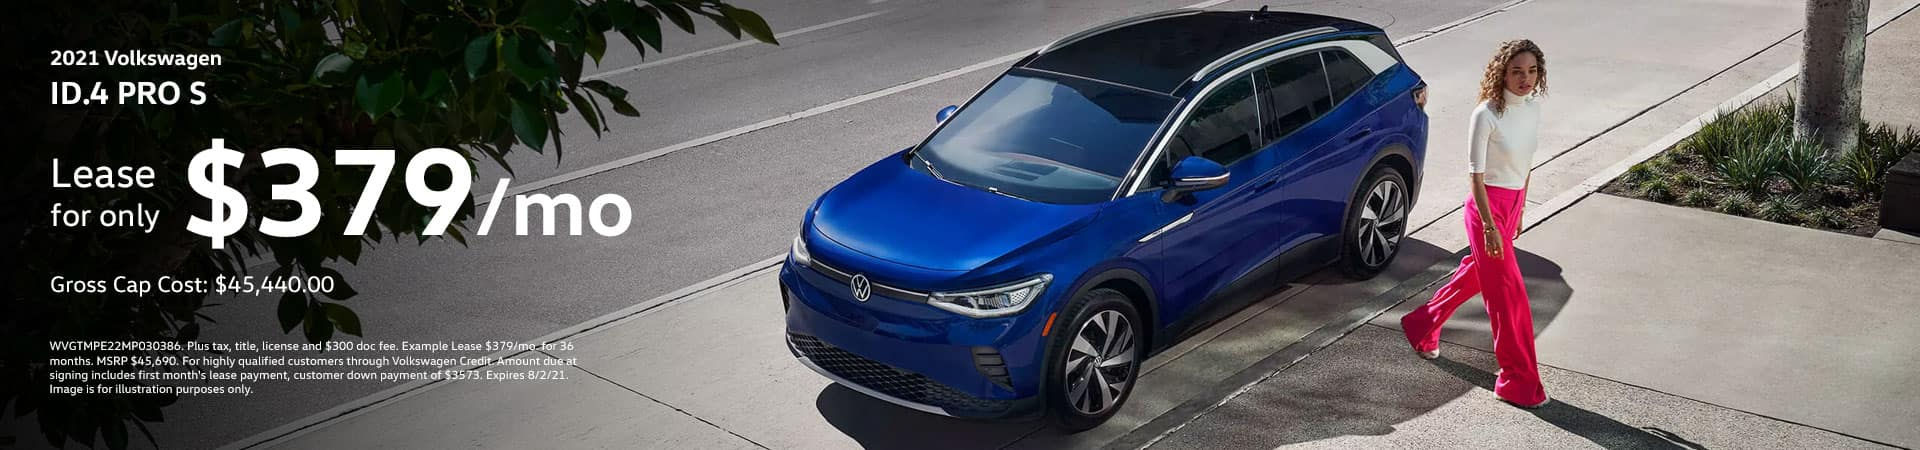 2021 ID.4 PRO S Lease for only $379/month